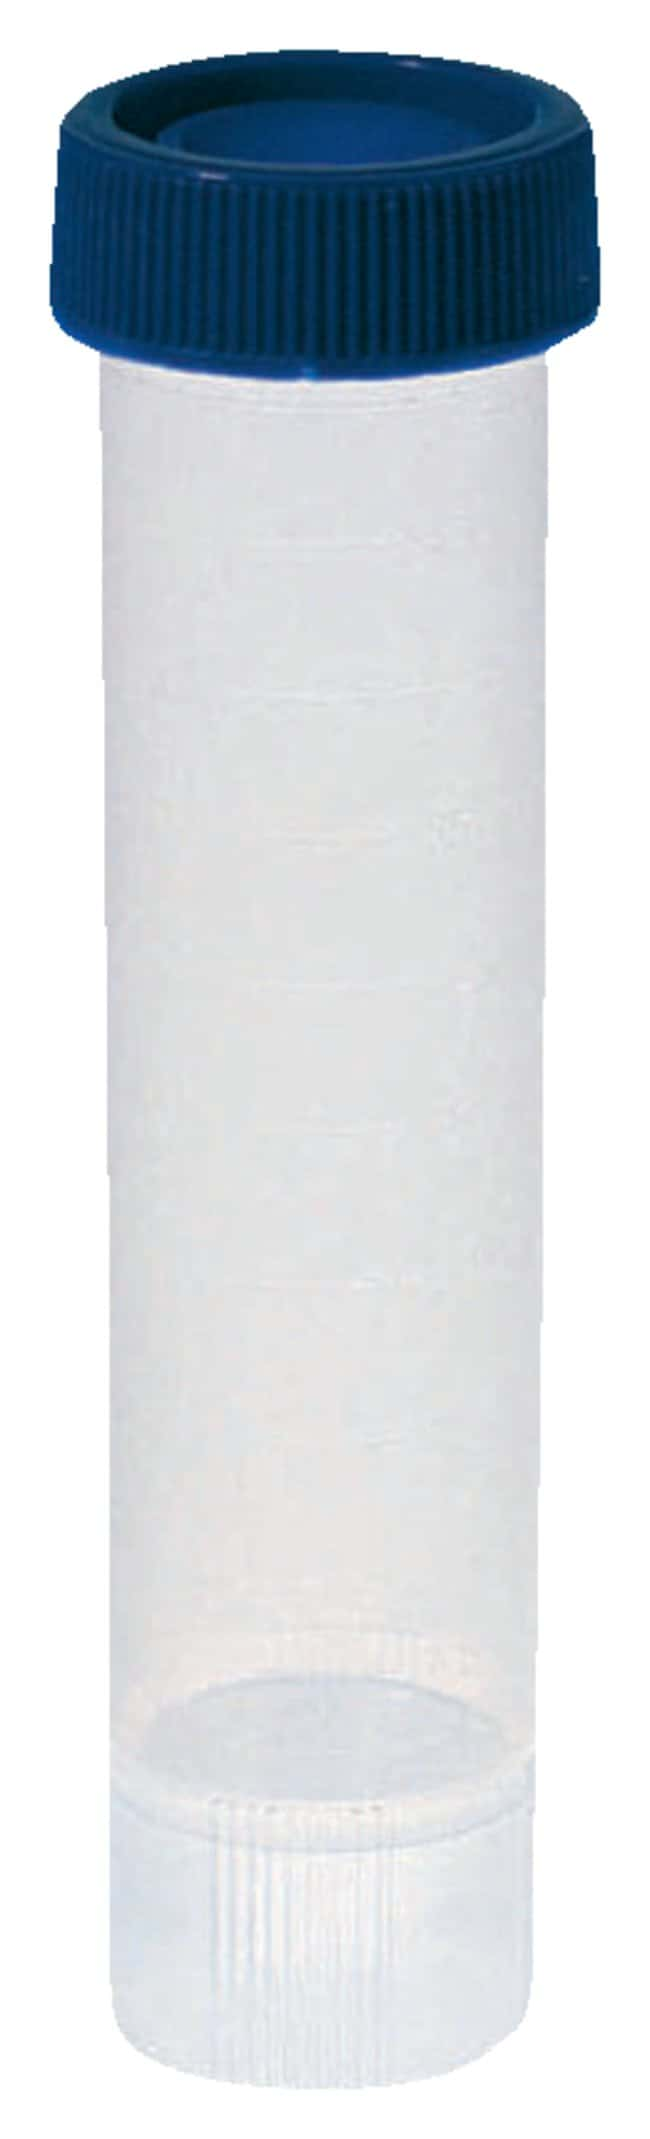 Fisherbrand™ 50mL Graduated Polypropylene Centrifuge Tube